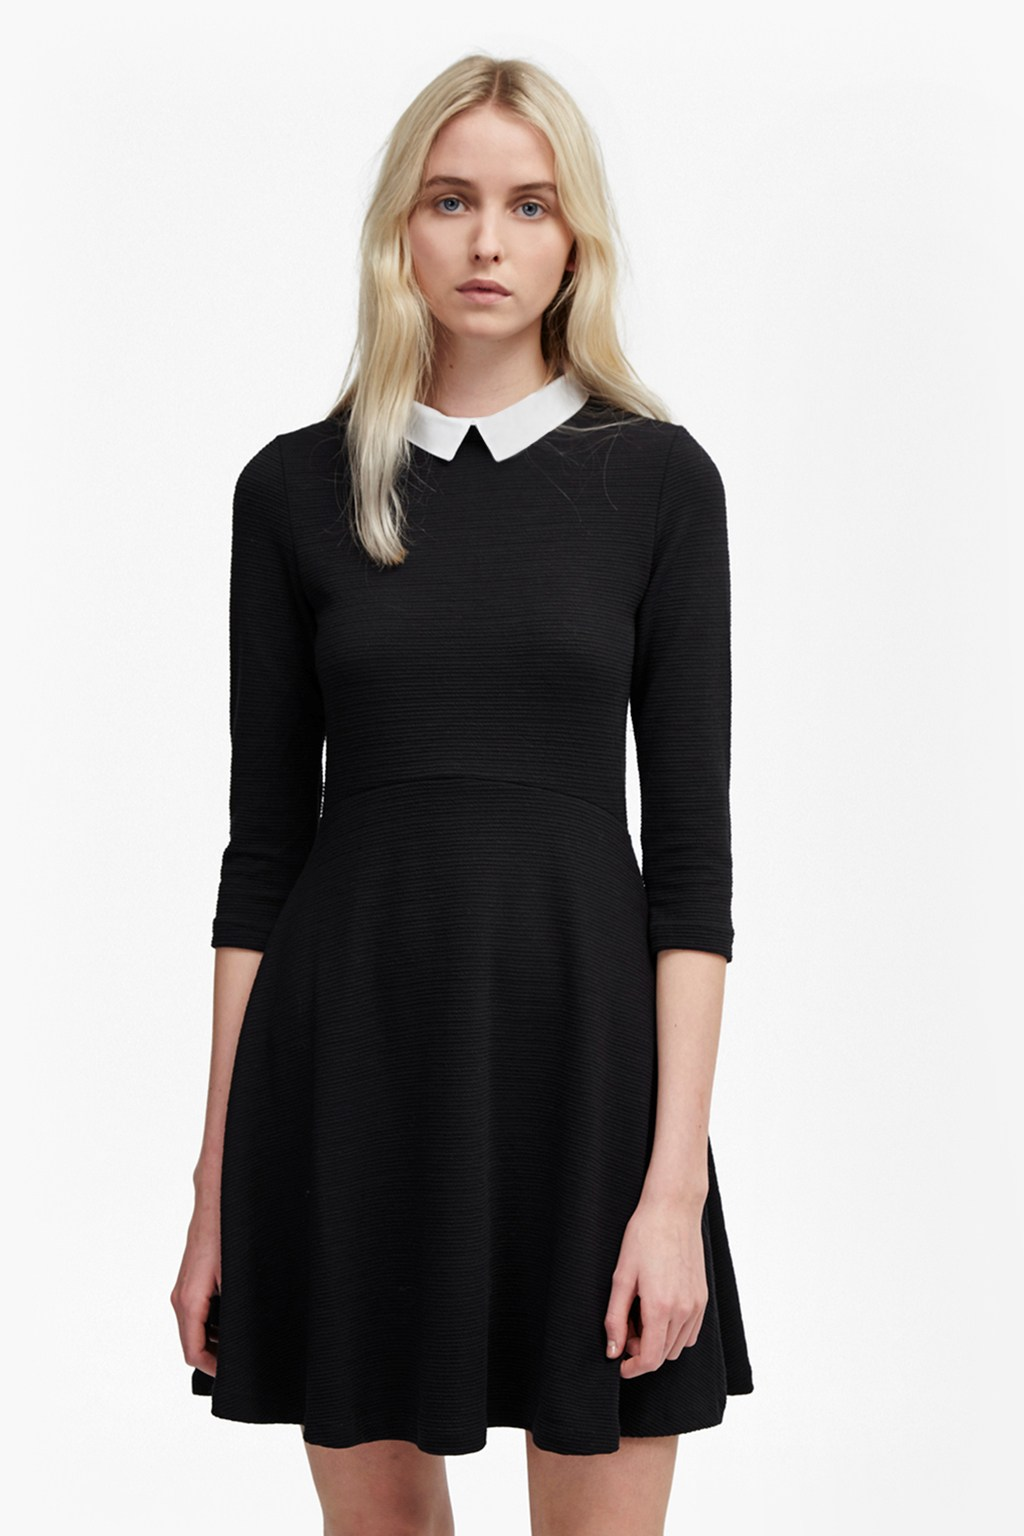 Find great deals on eBay for collared shirt dress. Shop with confidence.